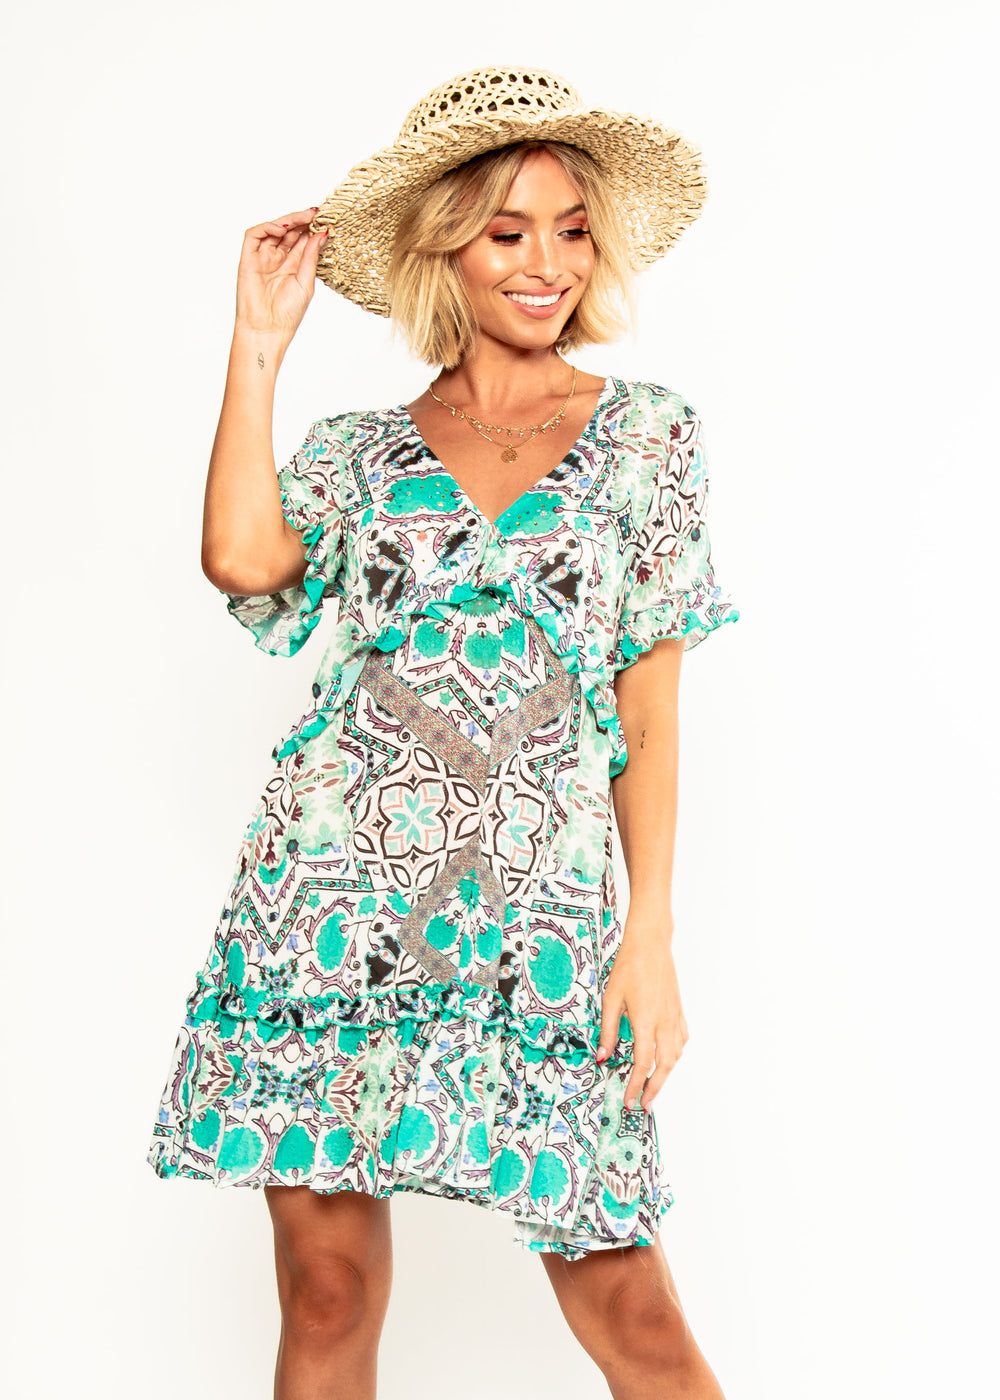 Hold Me Now Dress - Havana